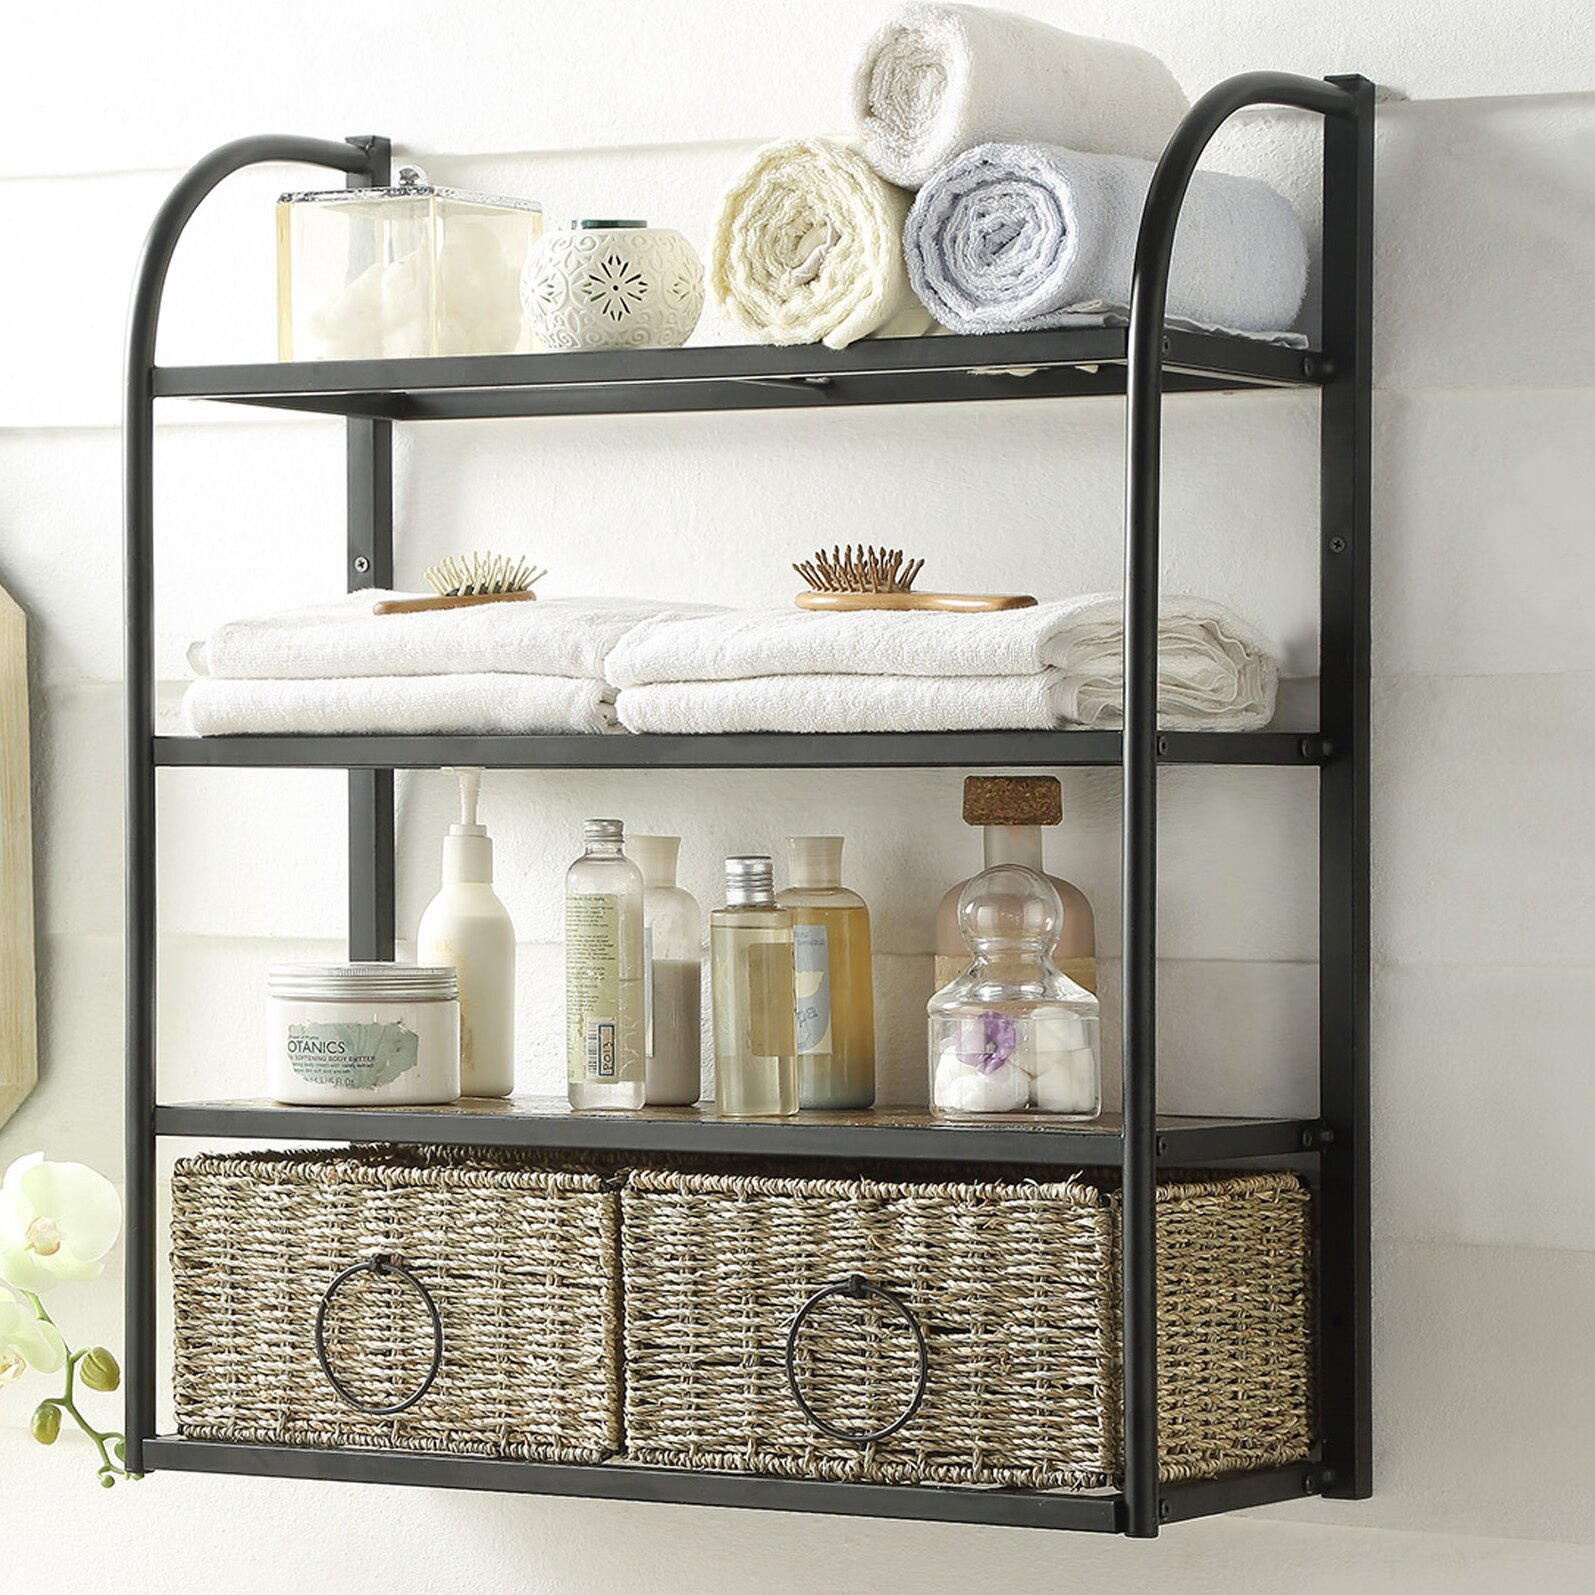 4d Concepts Windsor Hanging Storage Rack With Basket Wayfair